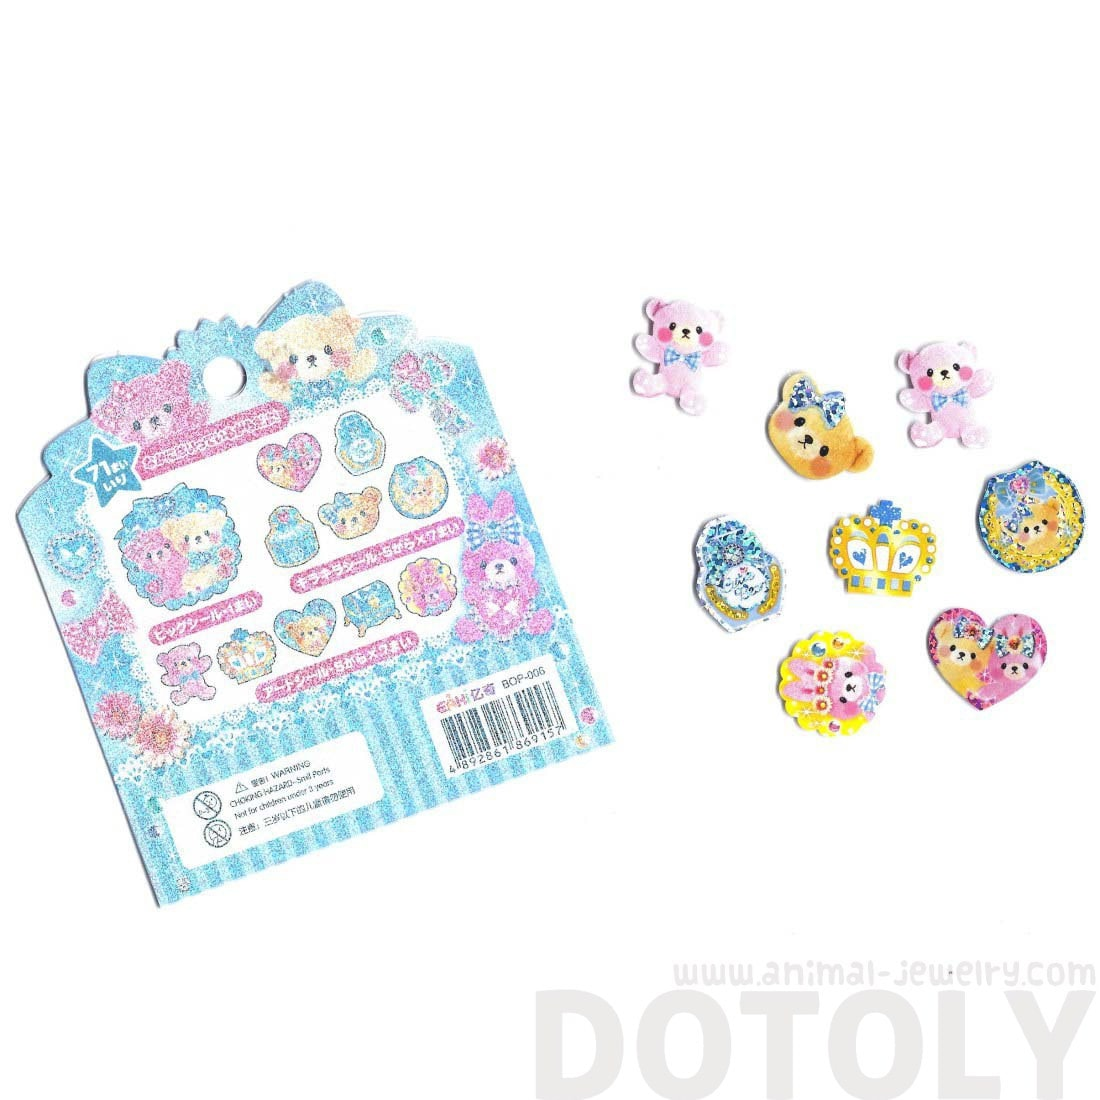 Pink Girly Teddy Bears and Gems Shaped Sticker Flake Seals From Japan